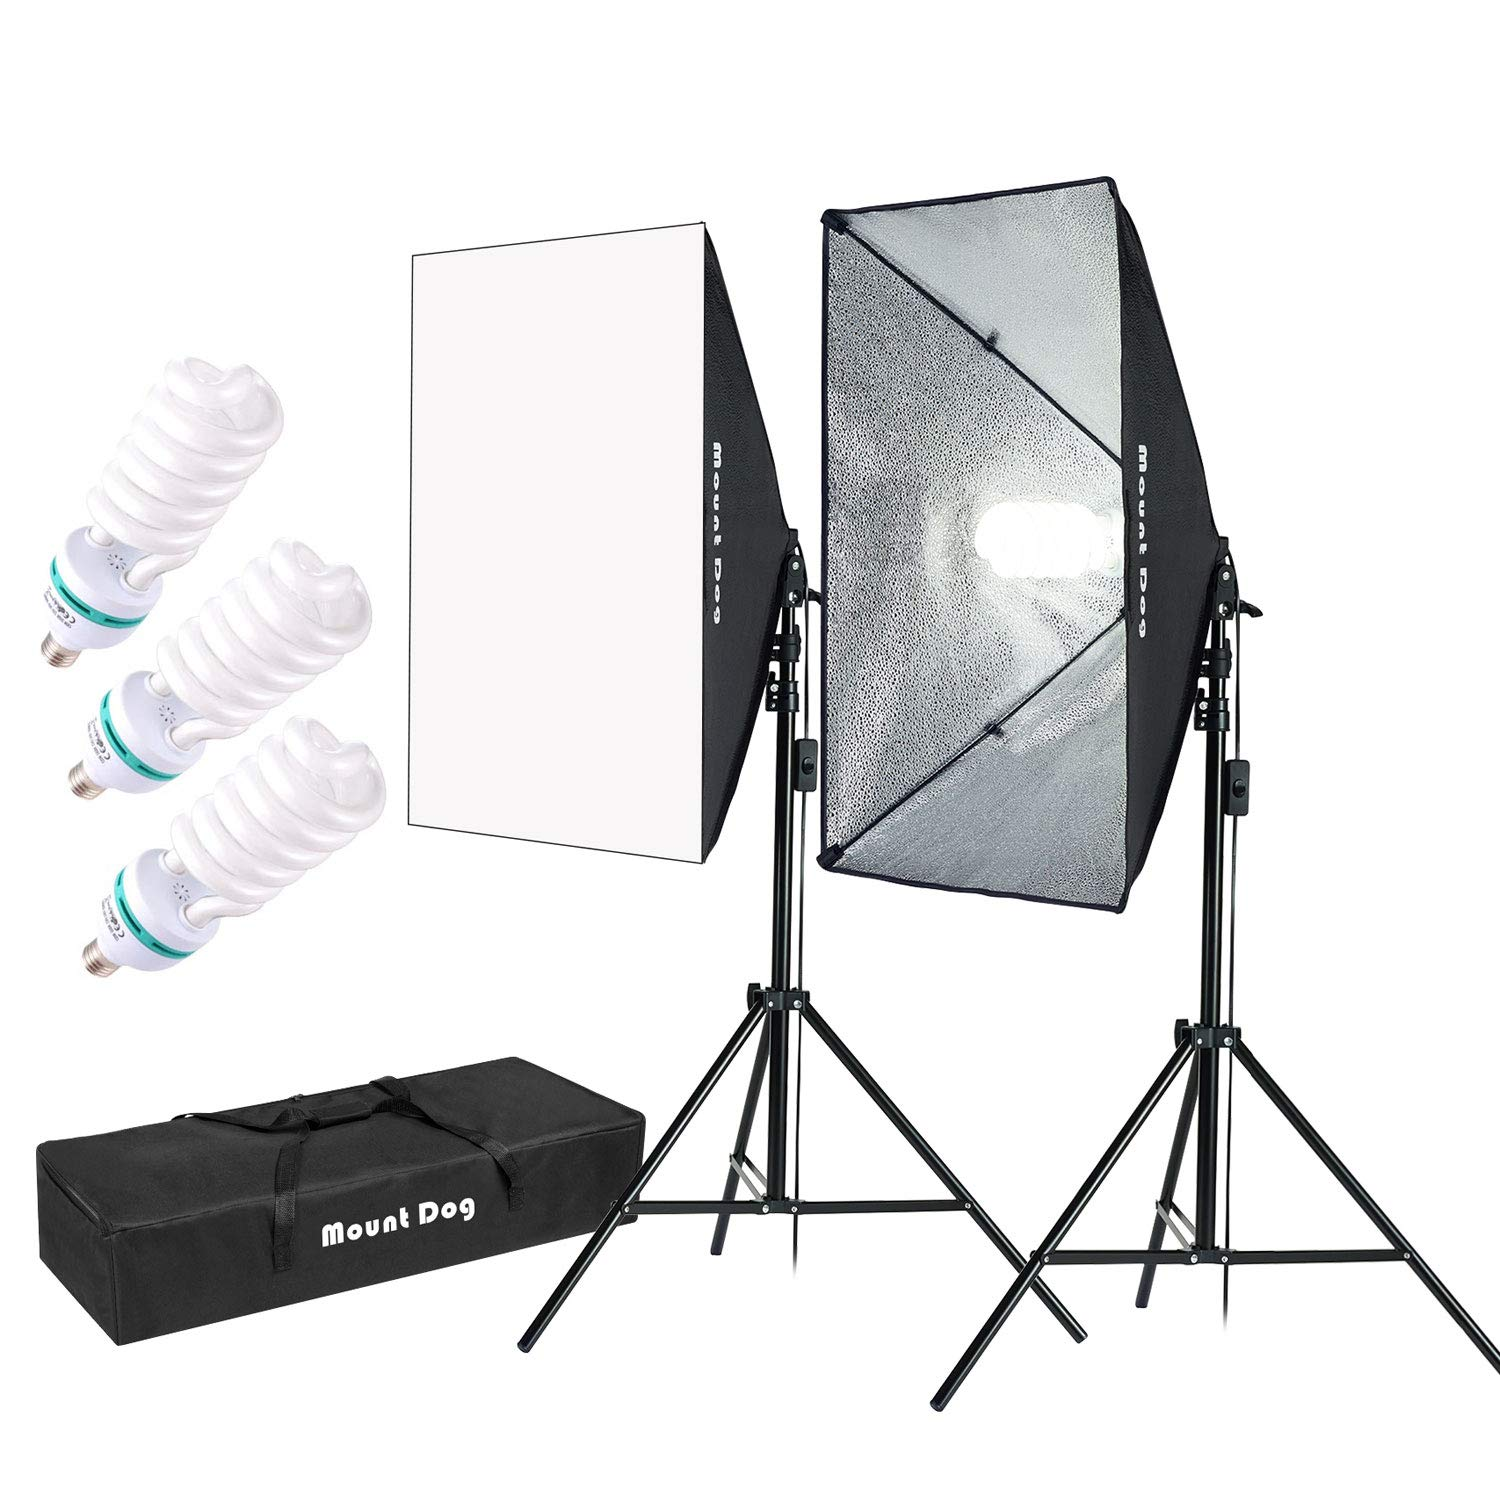 MOUNTDOG 1350W Photography Softbox Lighting Kit 20''X28'' Professional Continuous Light System with 3pcs E27 Video Bulbs 5500K Photo Studio Equipment for Filming Model Portraits Advertising Shooting by MOUNTDOG (Image #1)